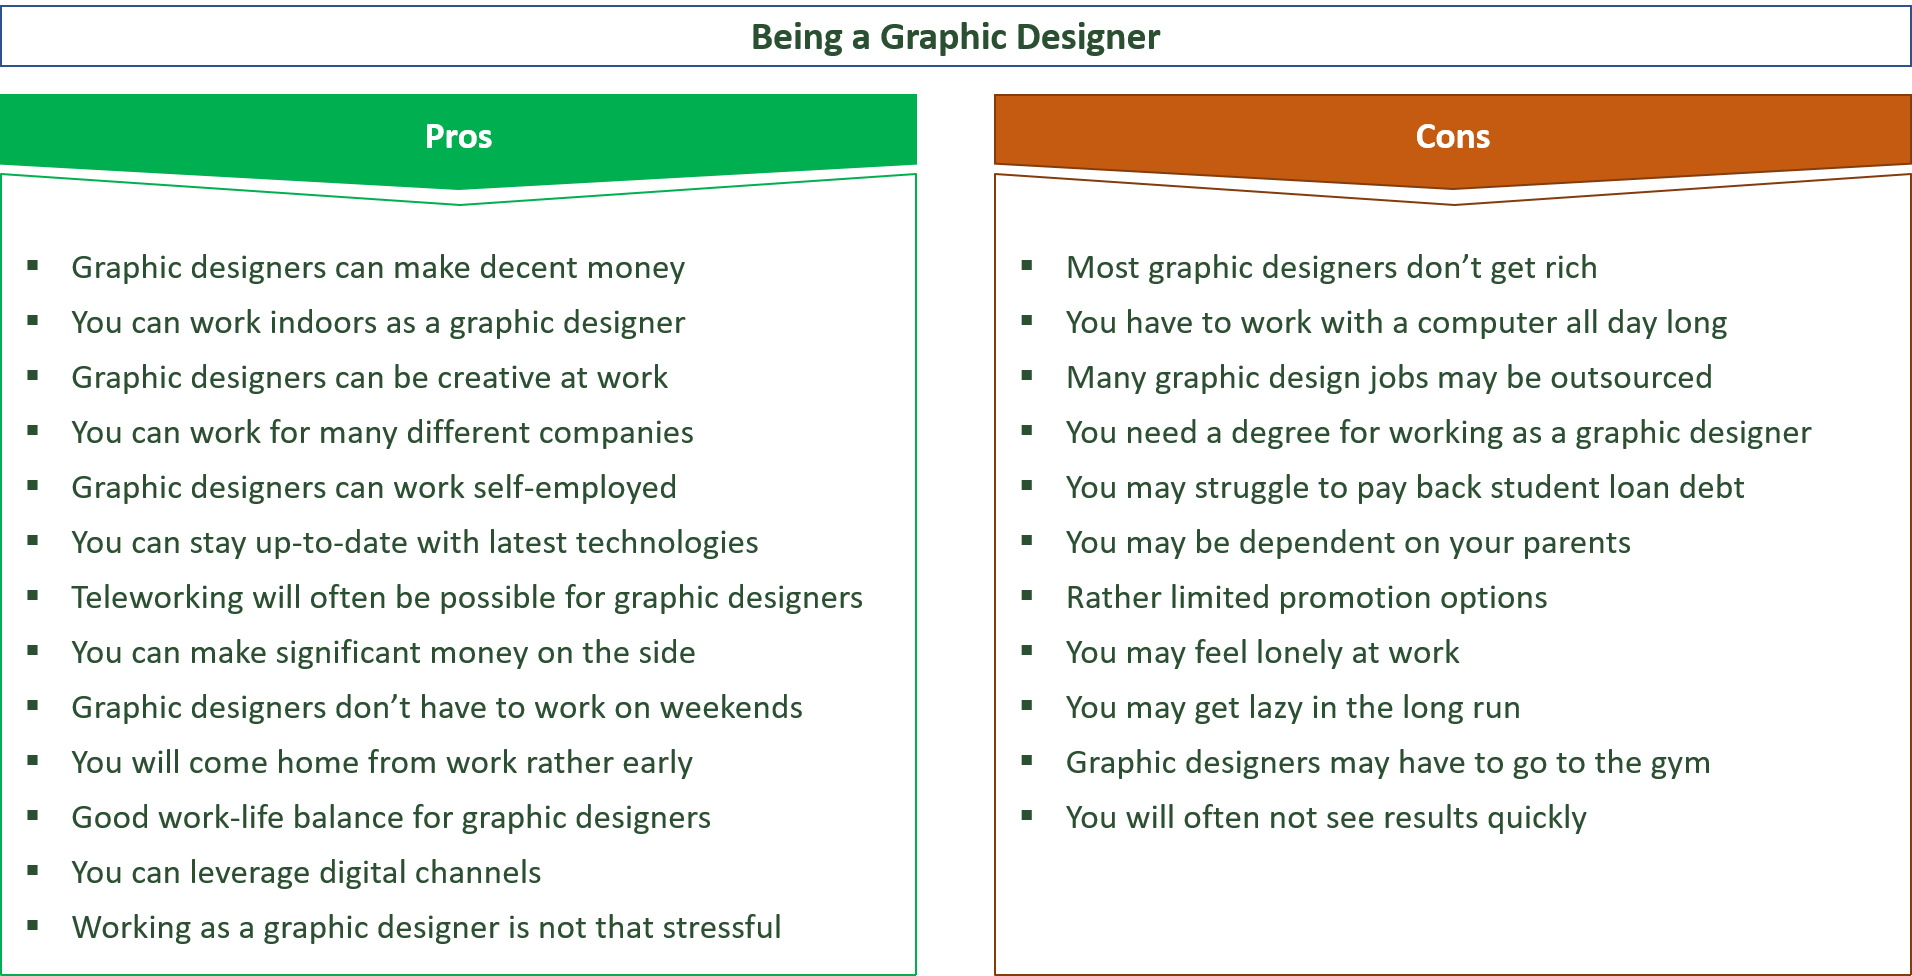 advantages and disadvantages of being a graphic designer